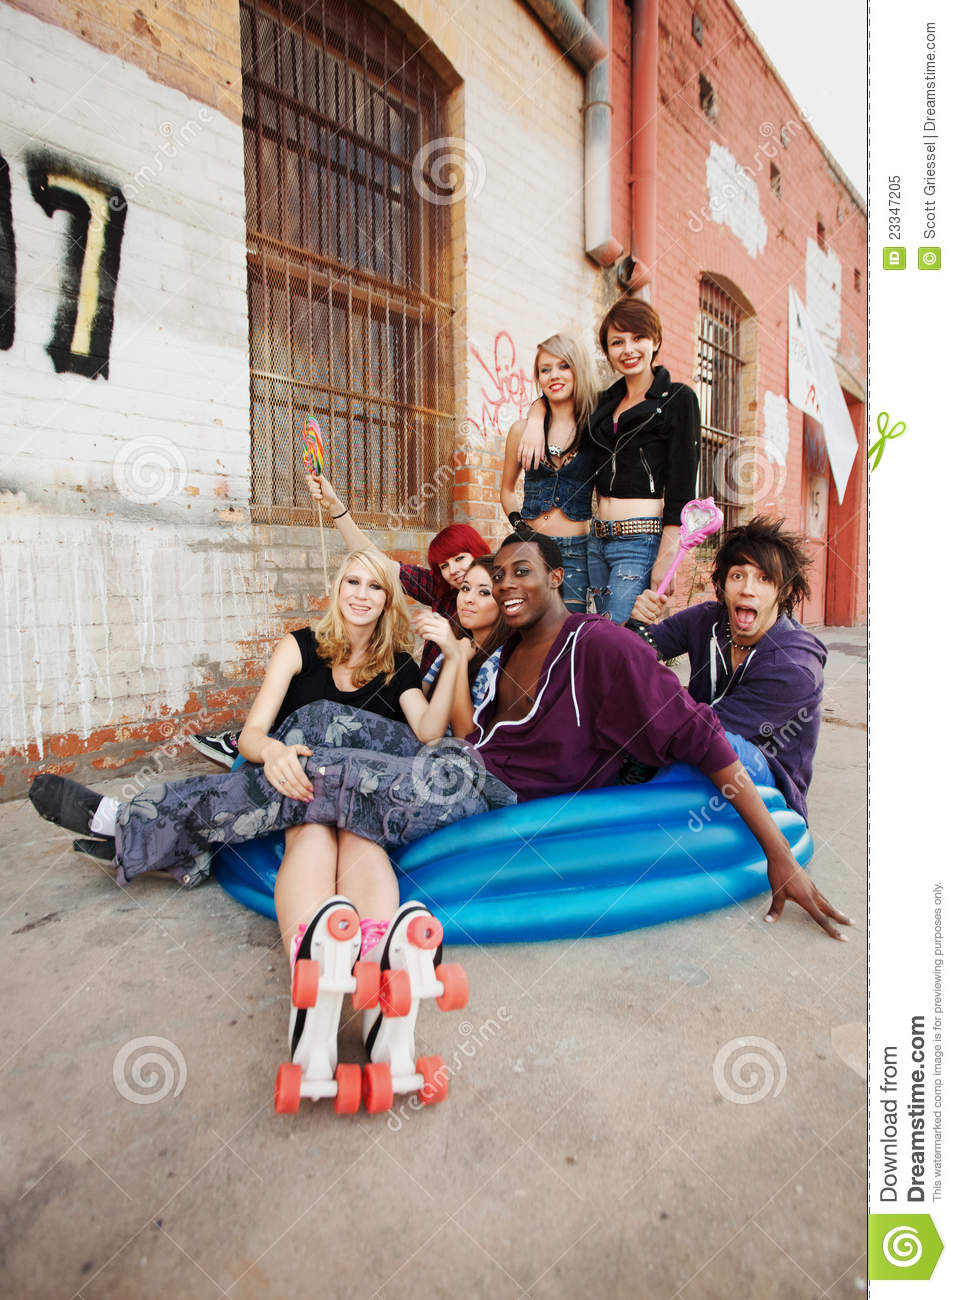 Teens Hanging Out In Alley Royalty Free Stock Photo